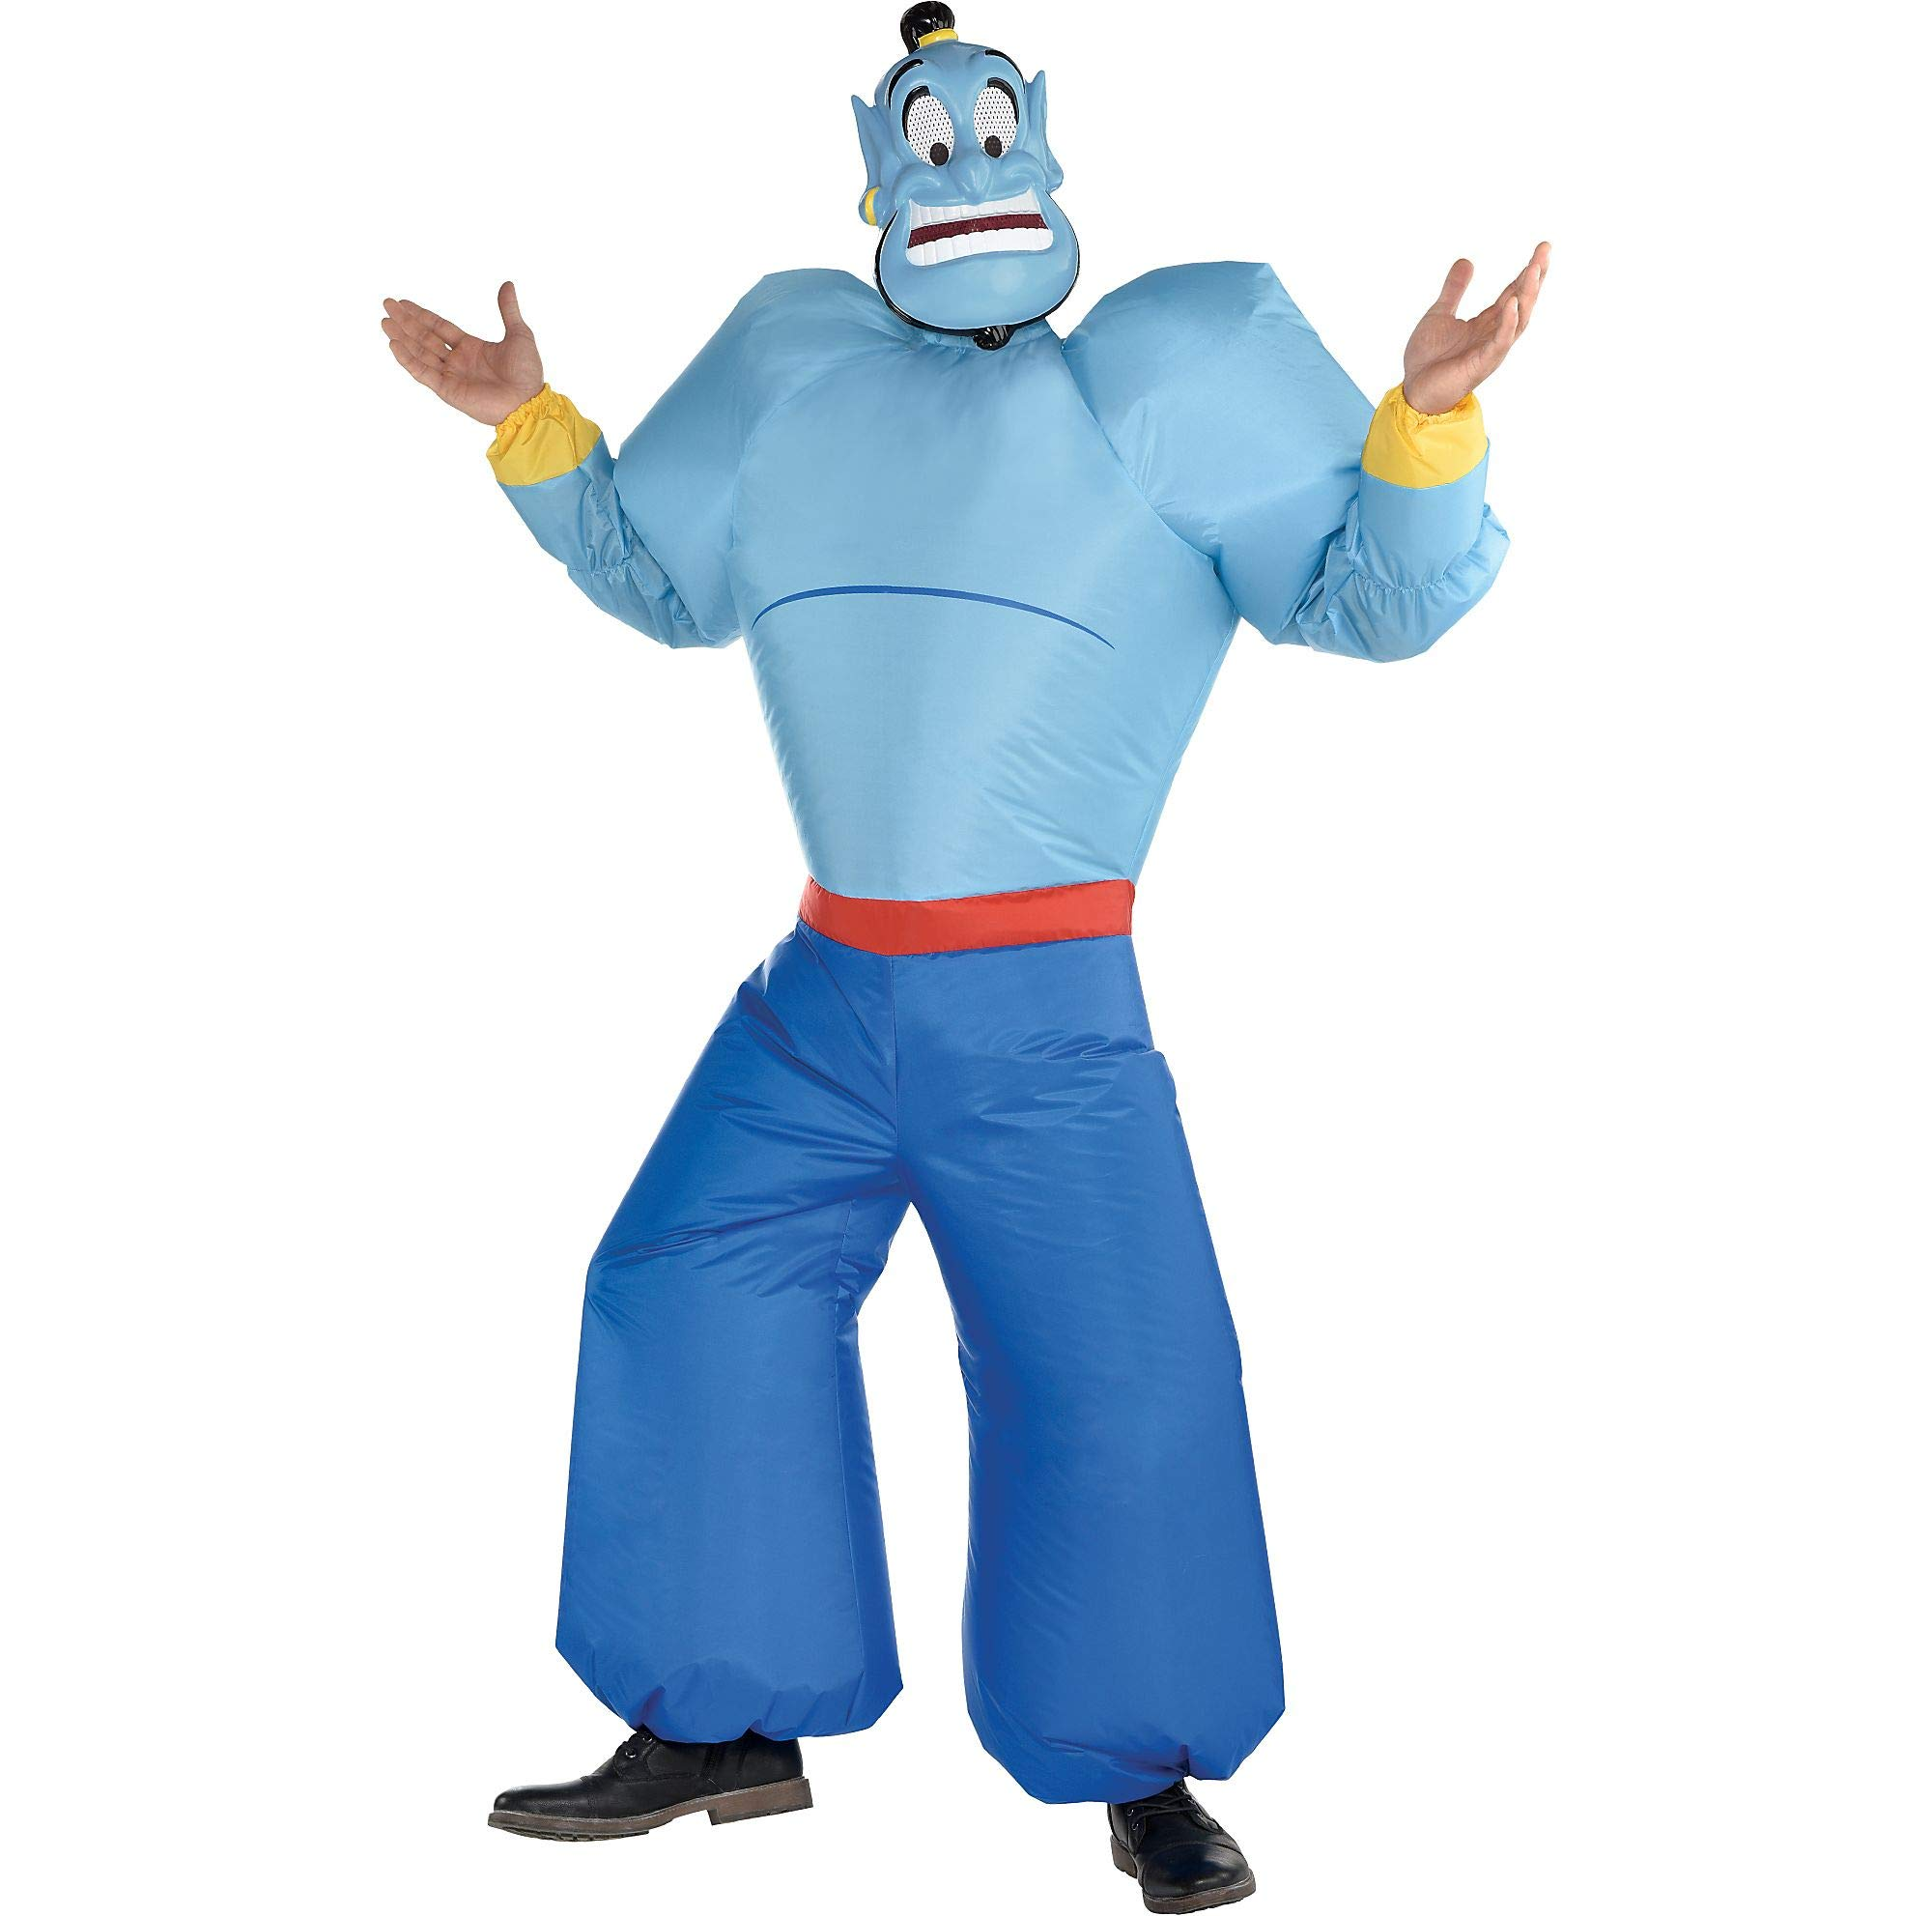 SUIT YOURSELF Inflatable Genie Halloween Costume for Adults, Aladdin, Standard, with Accessories